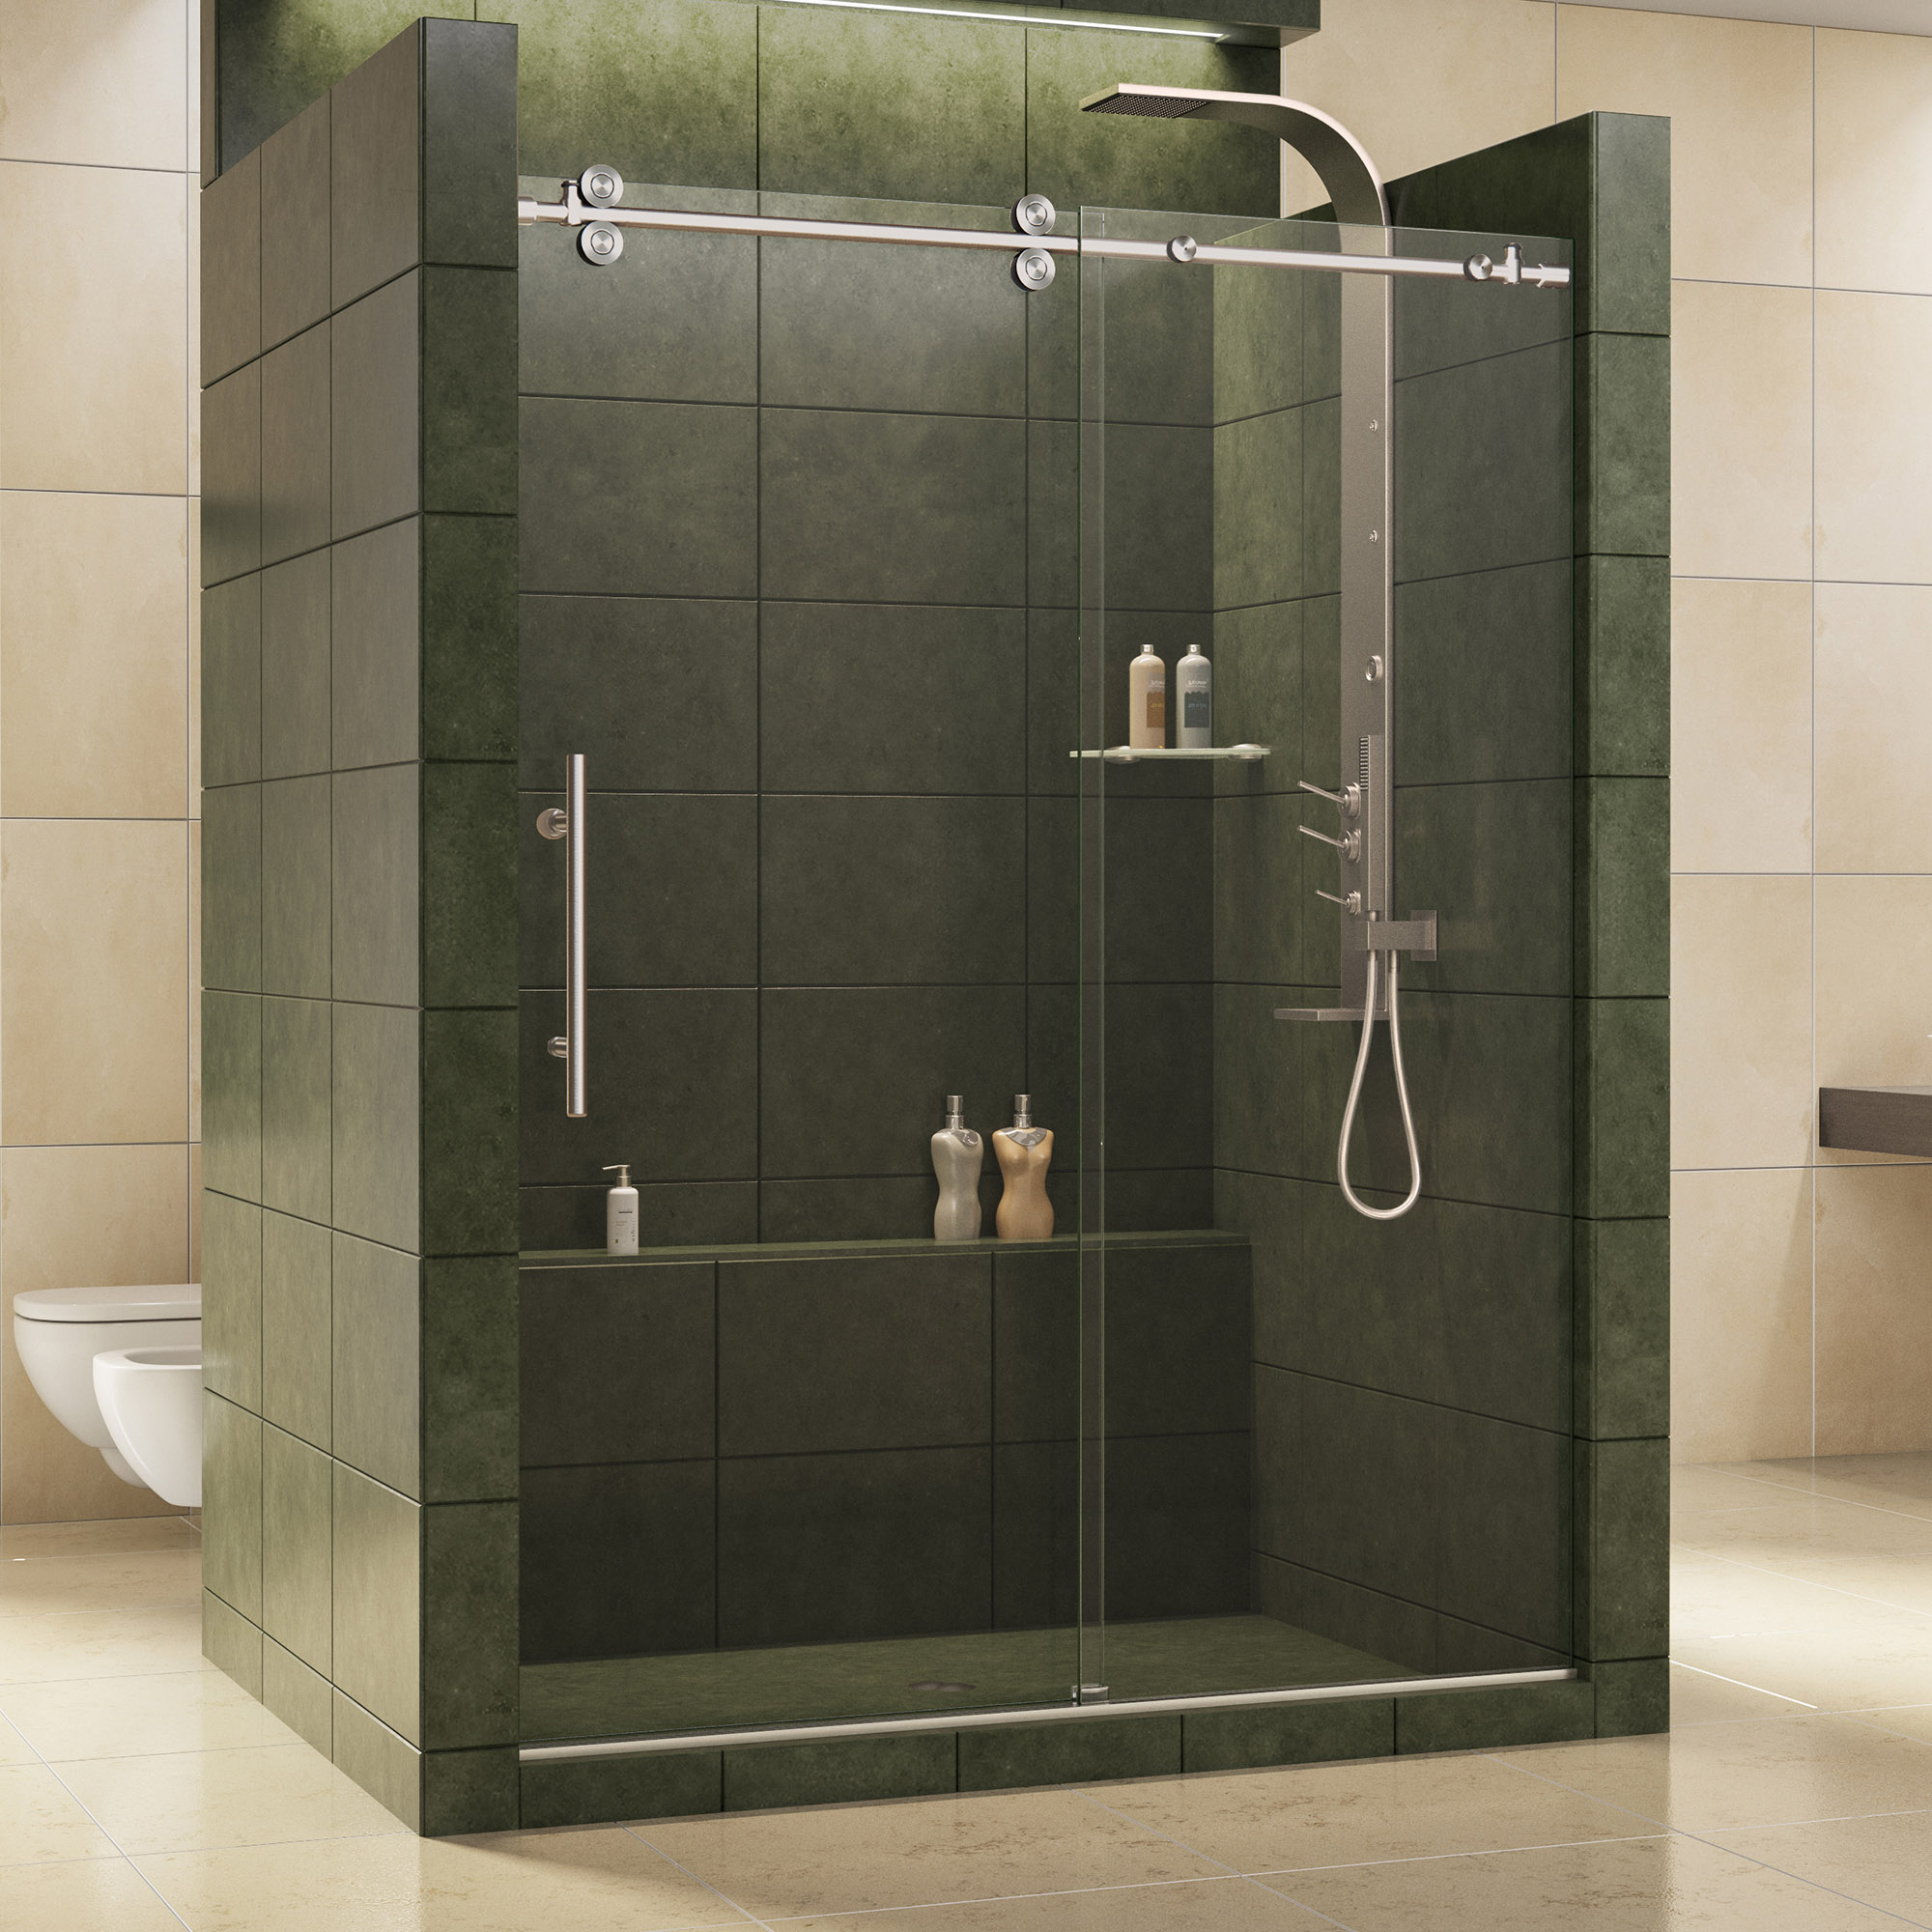 Dreamline Shdr 60607912 07 Enigma 56 To 60 Sliding Shower Door, Clear